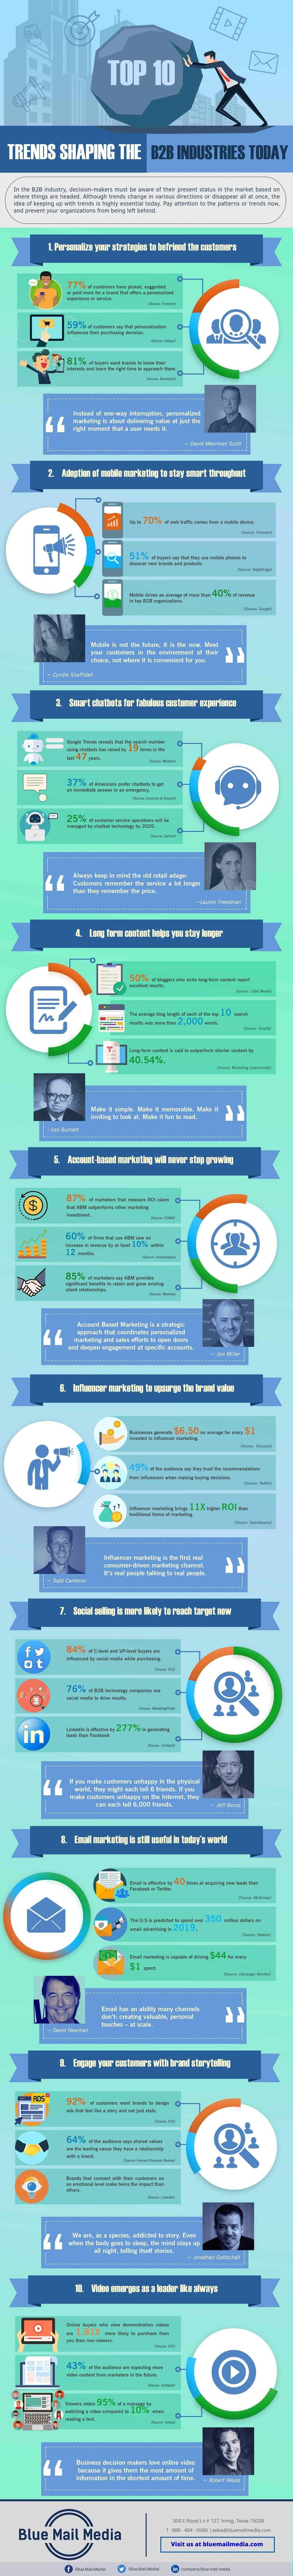 Top 10 B2B Industries Trends Today #infographic